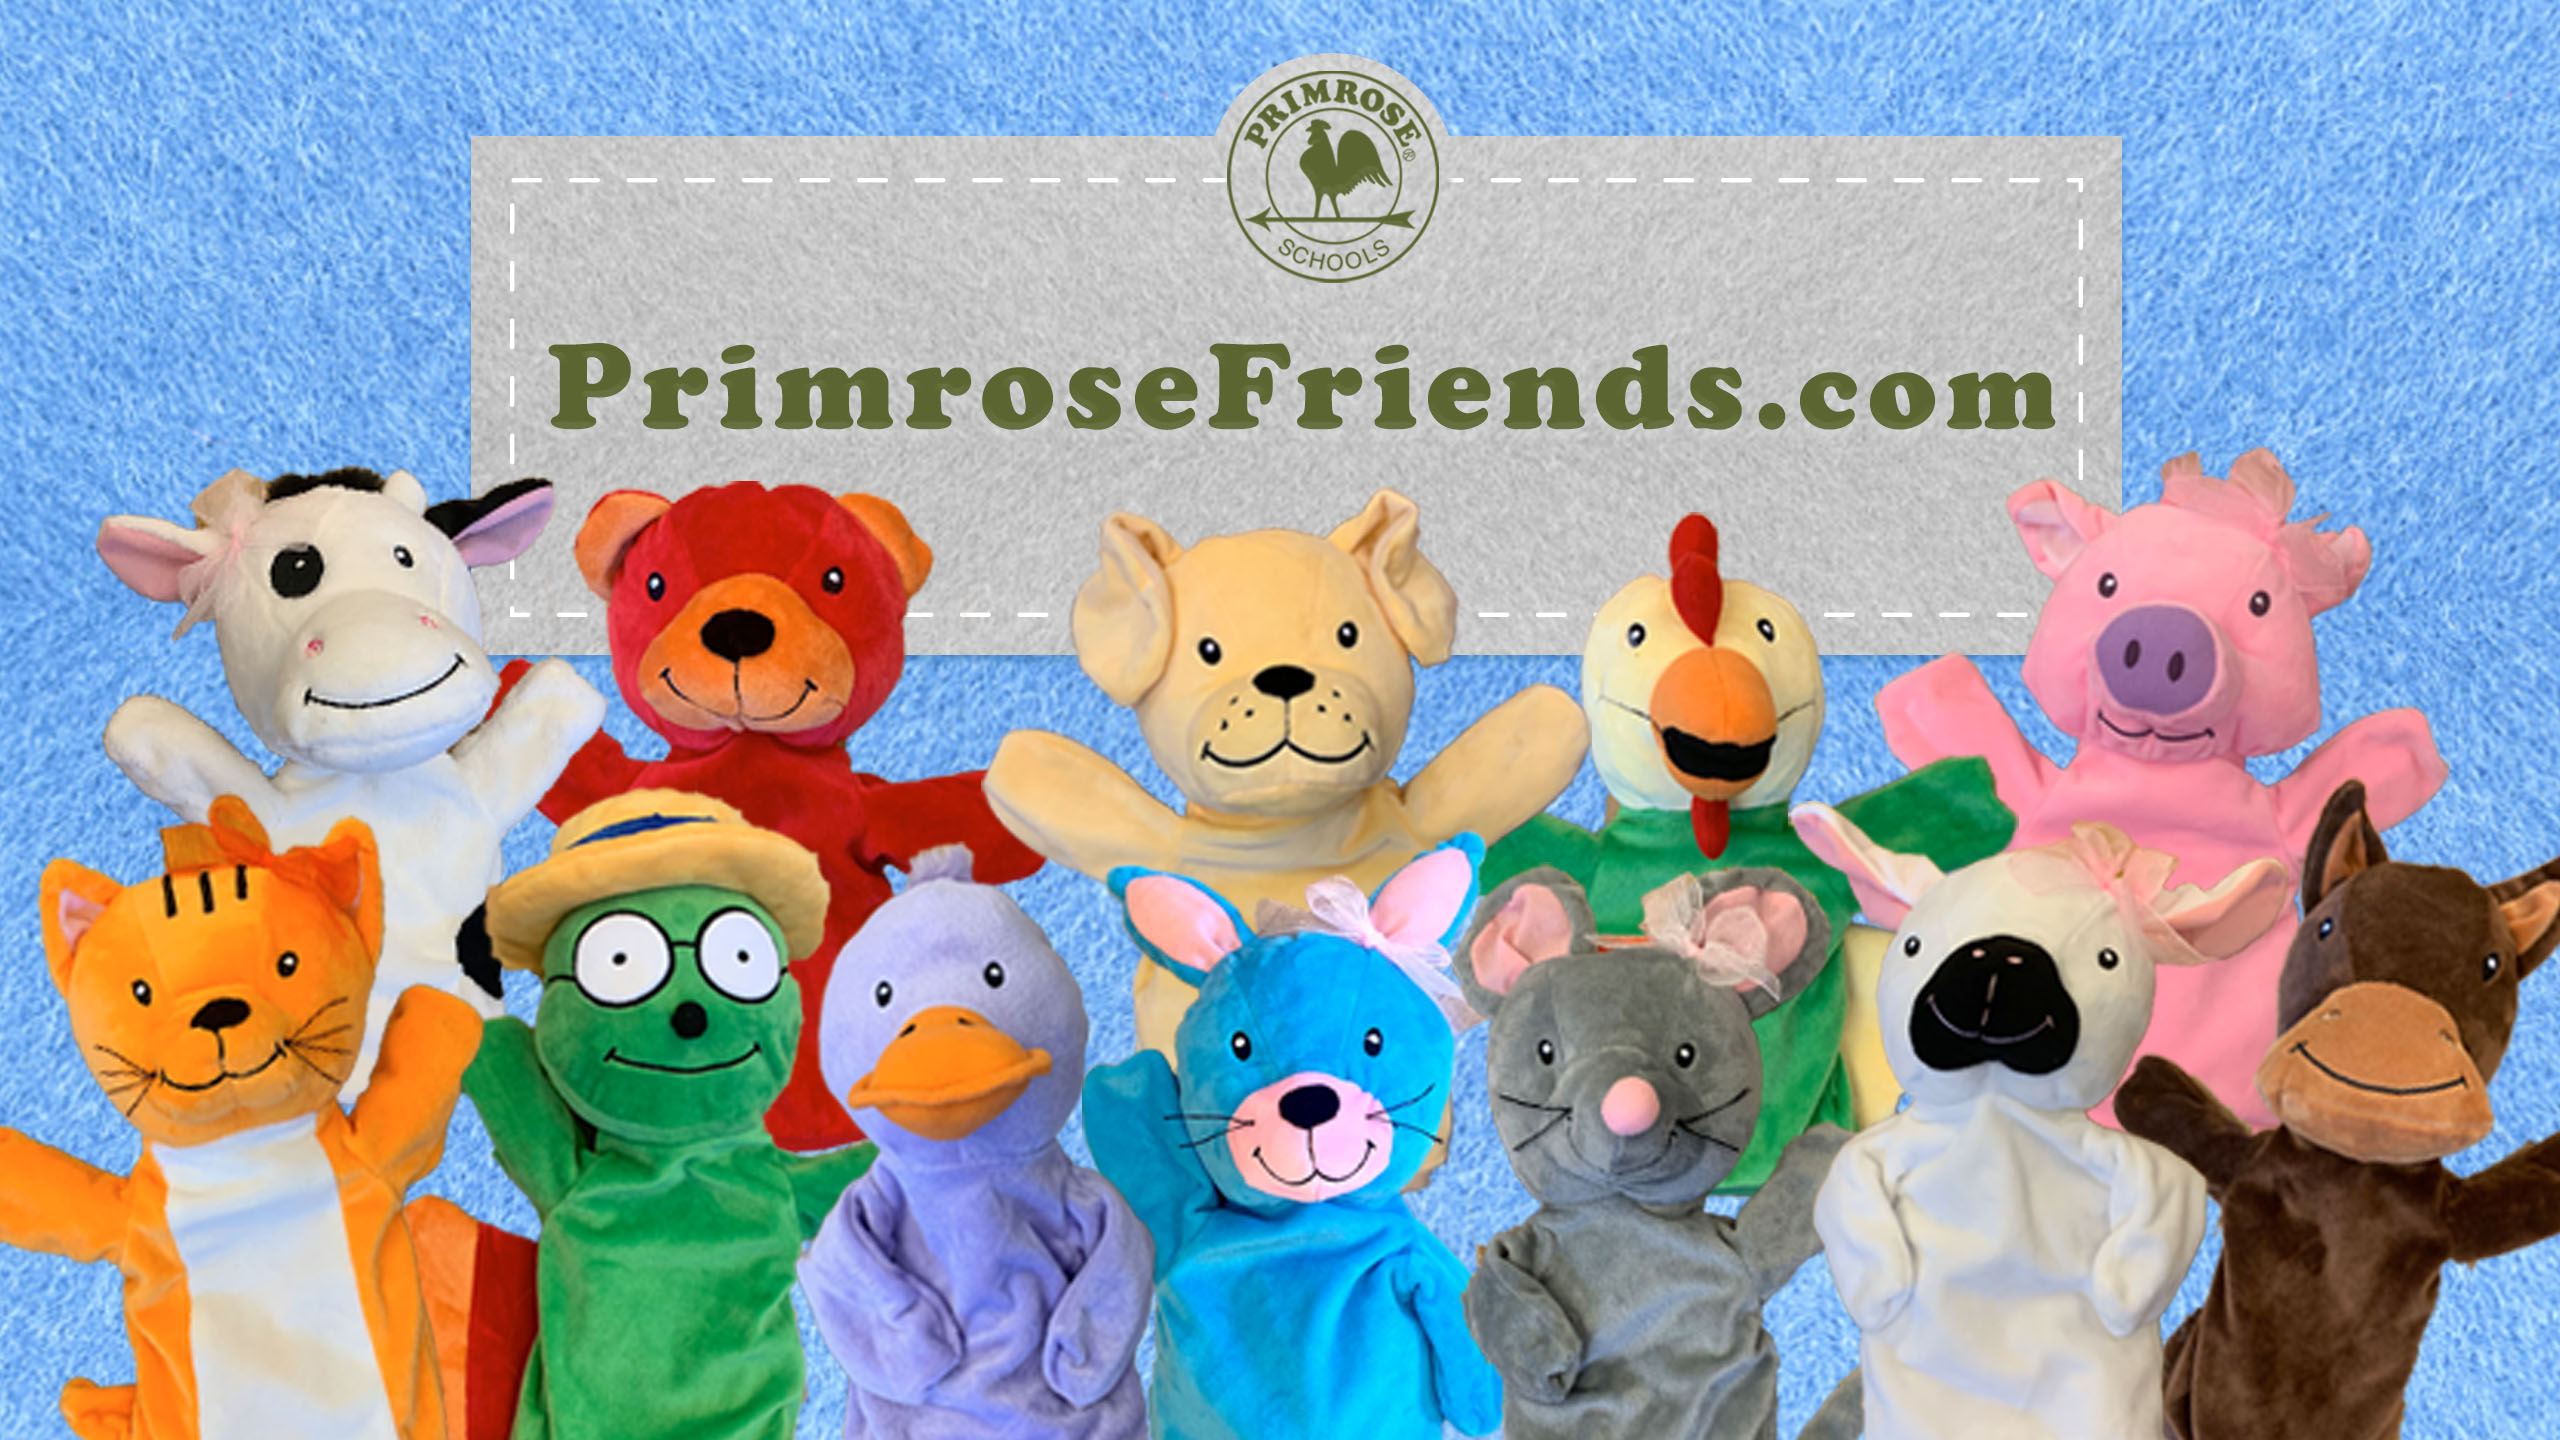 Manifest Partners with Primrose Schools in Launching Branded Programming Education Videos Starring the Primrose Friends